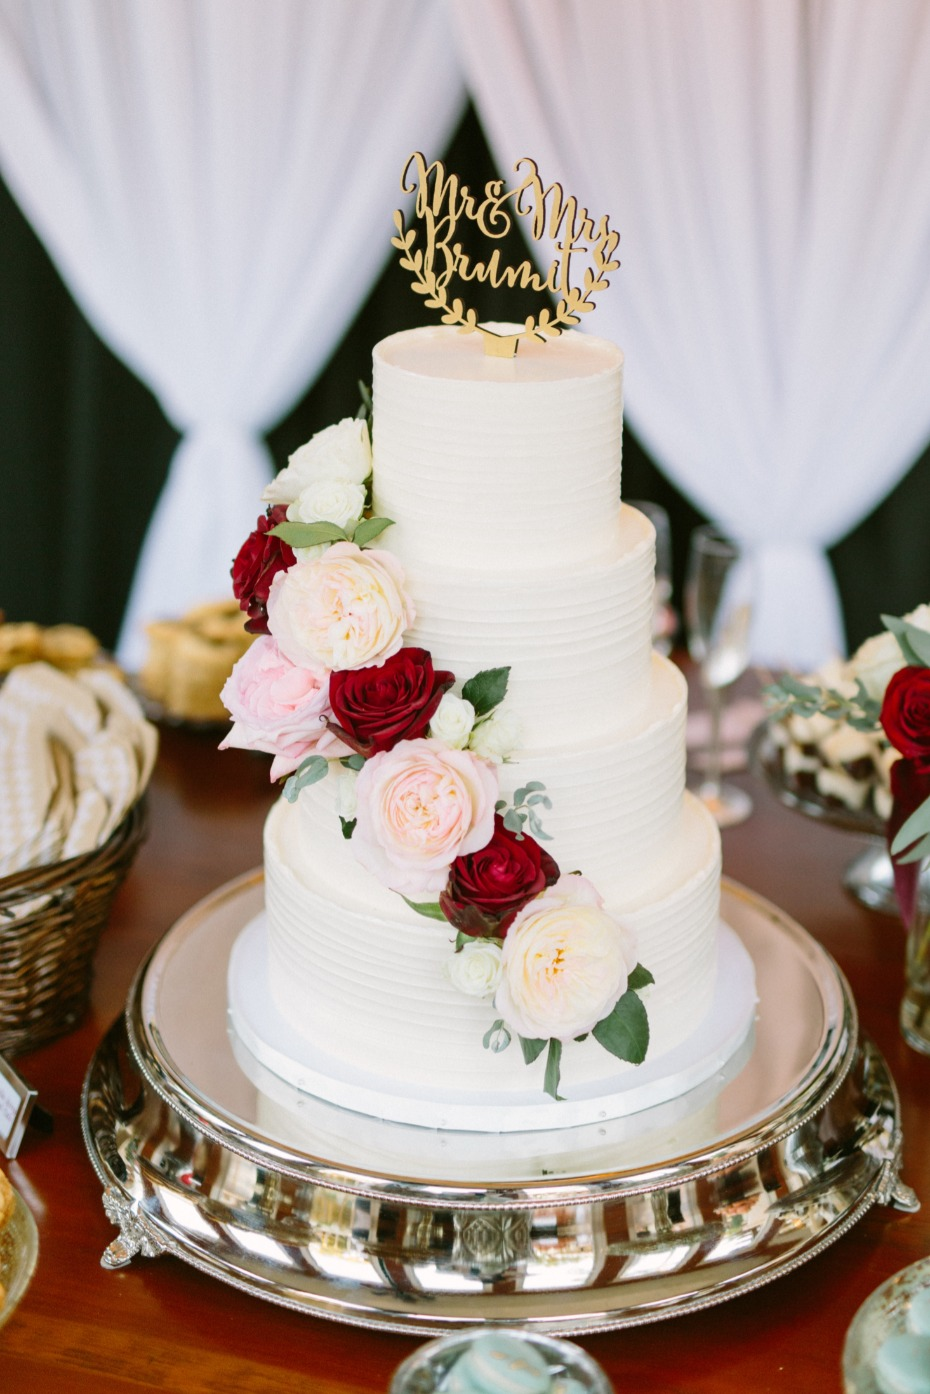 White wedding cake with cascading roses